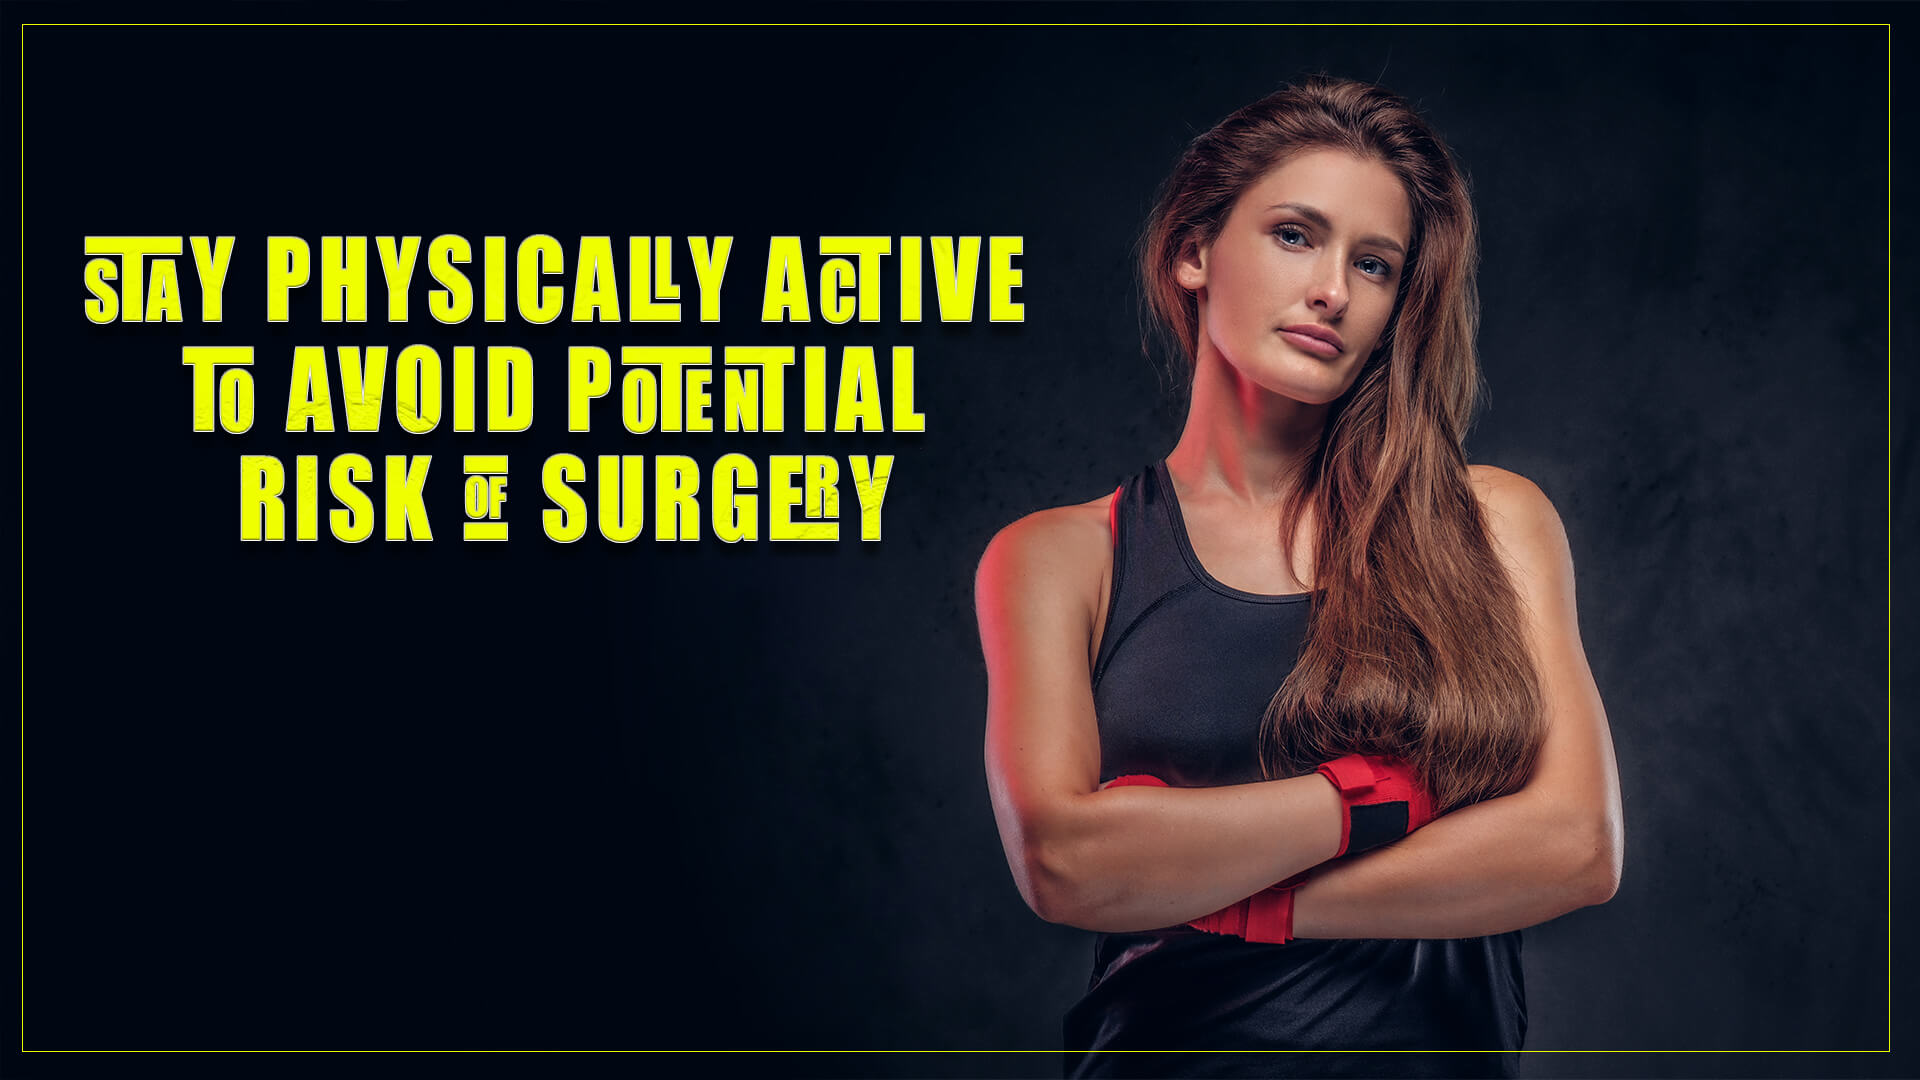 Stay Physically Active to Avoid Potential Risk of Surgery